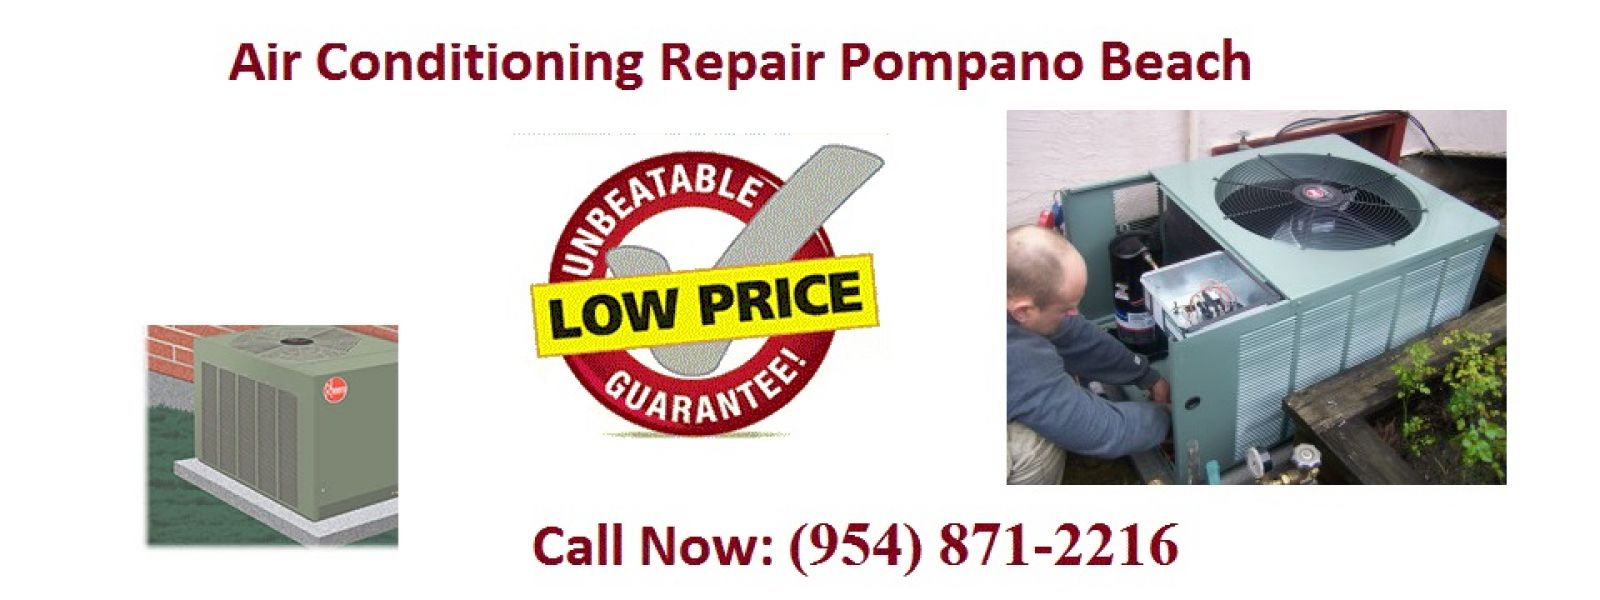 Service / Repair / Installation / Maintenance Contracts for Air Conditioning Pompano Beach